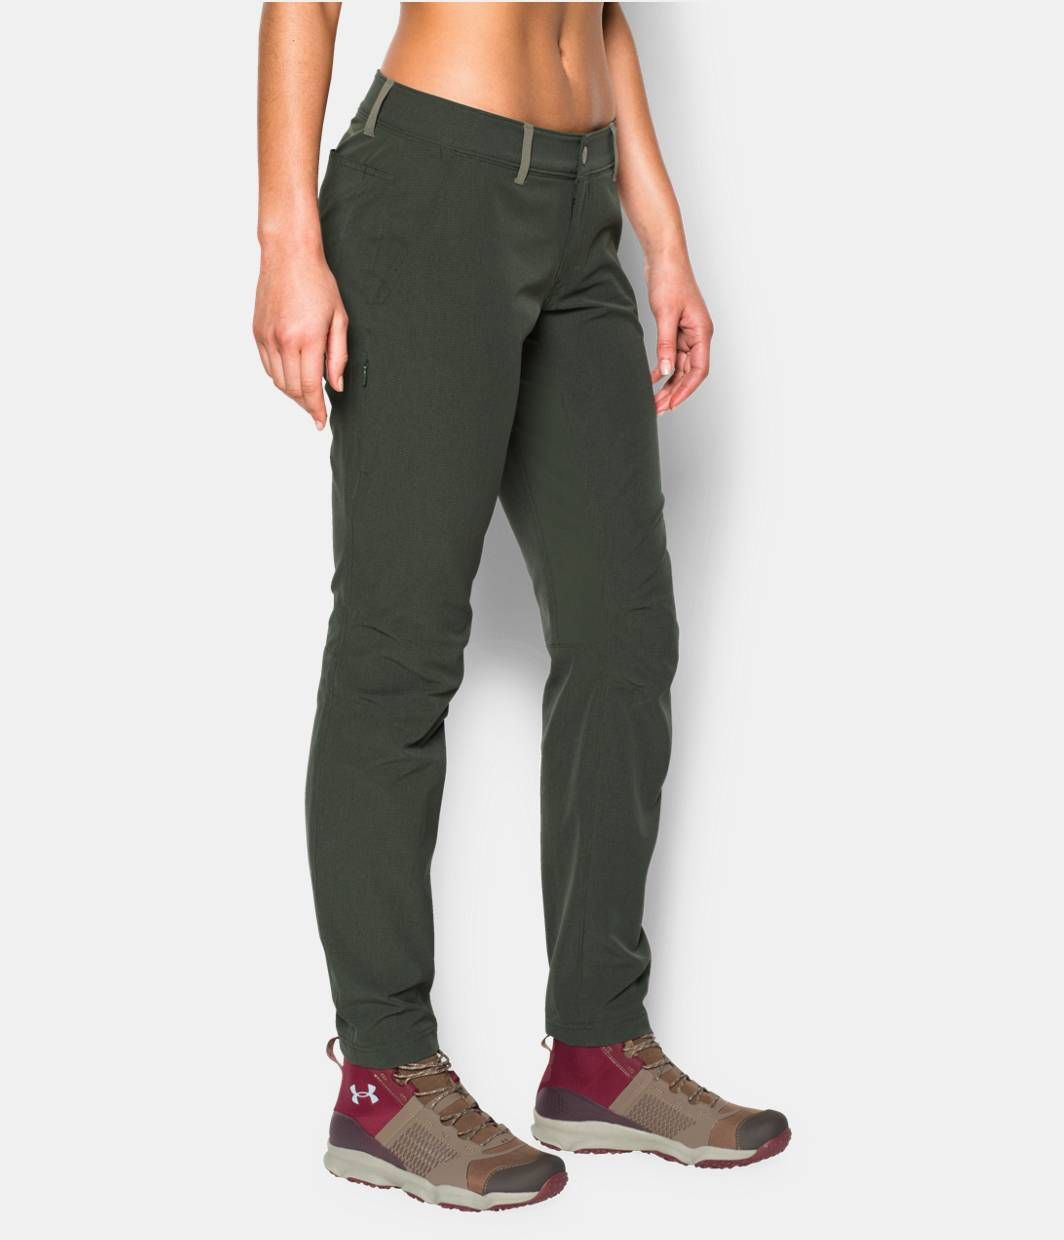 996703c80a4 Shop Under Armour for Women's UA ArmourVent™ Trail Pant in our Womens  Bottoms department. Free shipping is available in US.